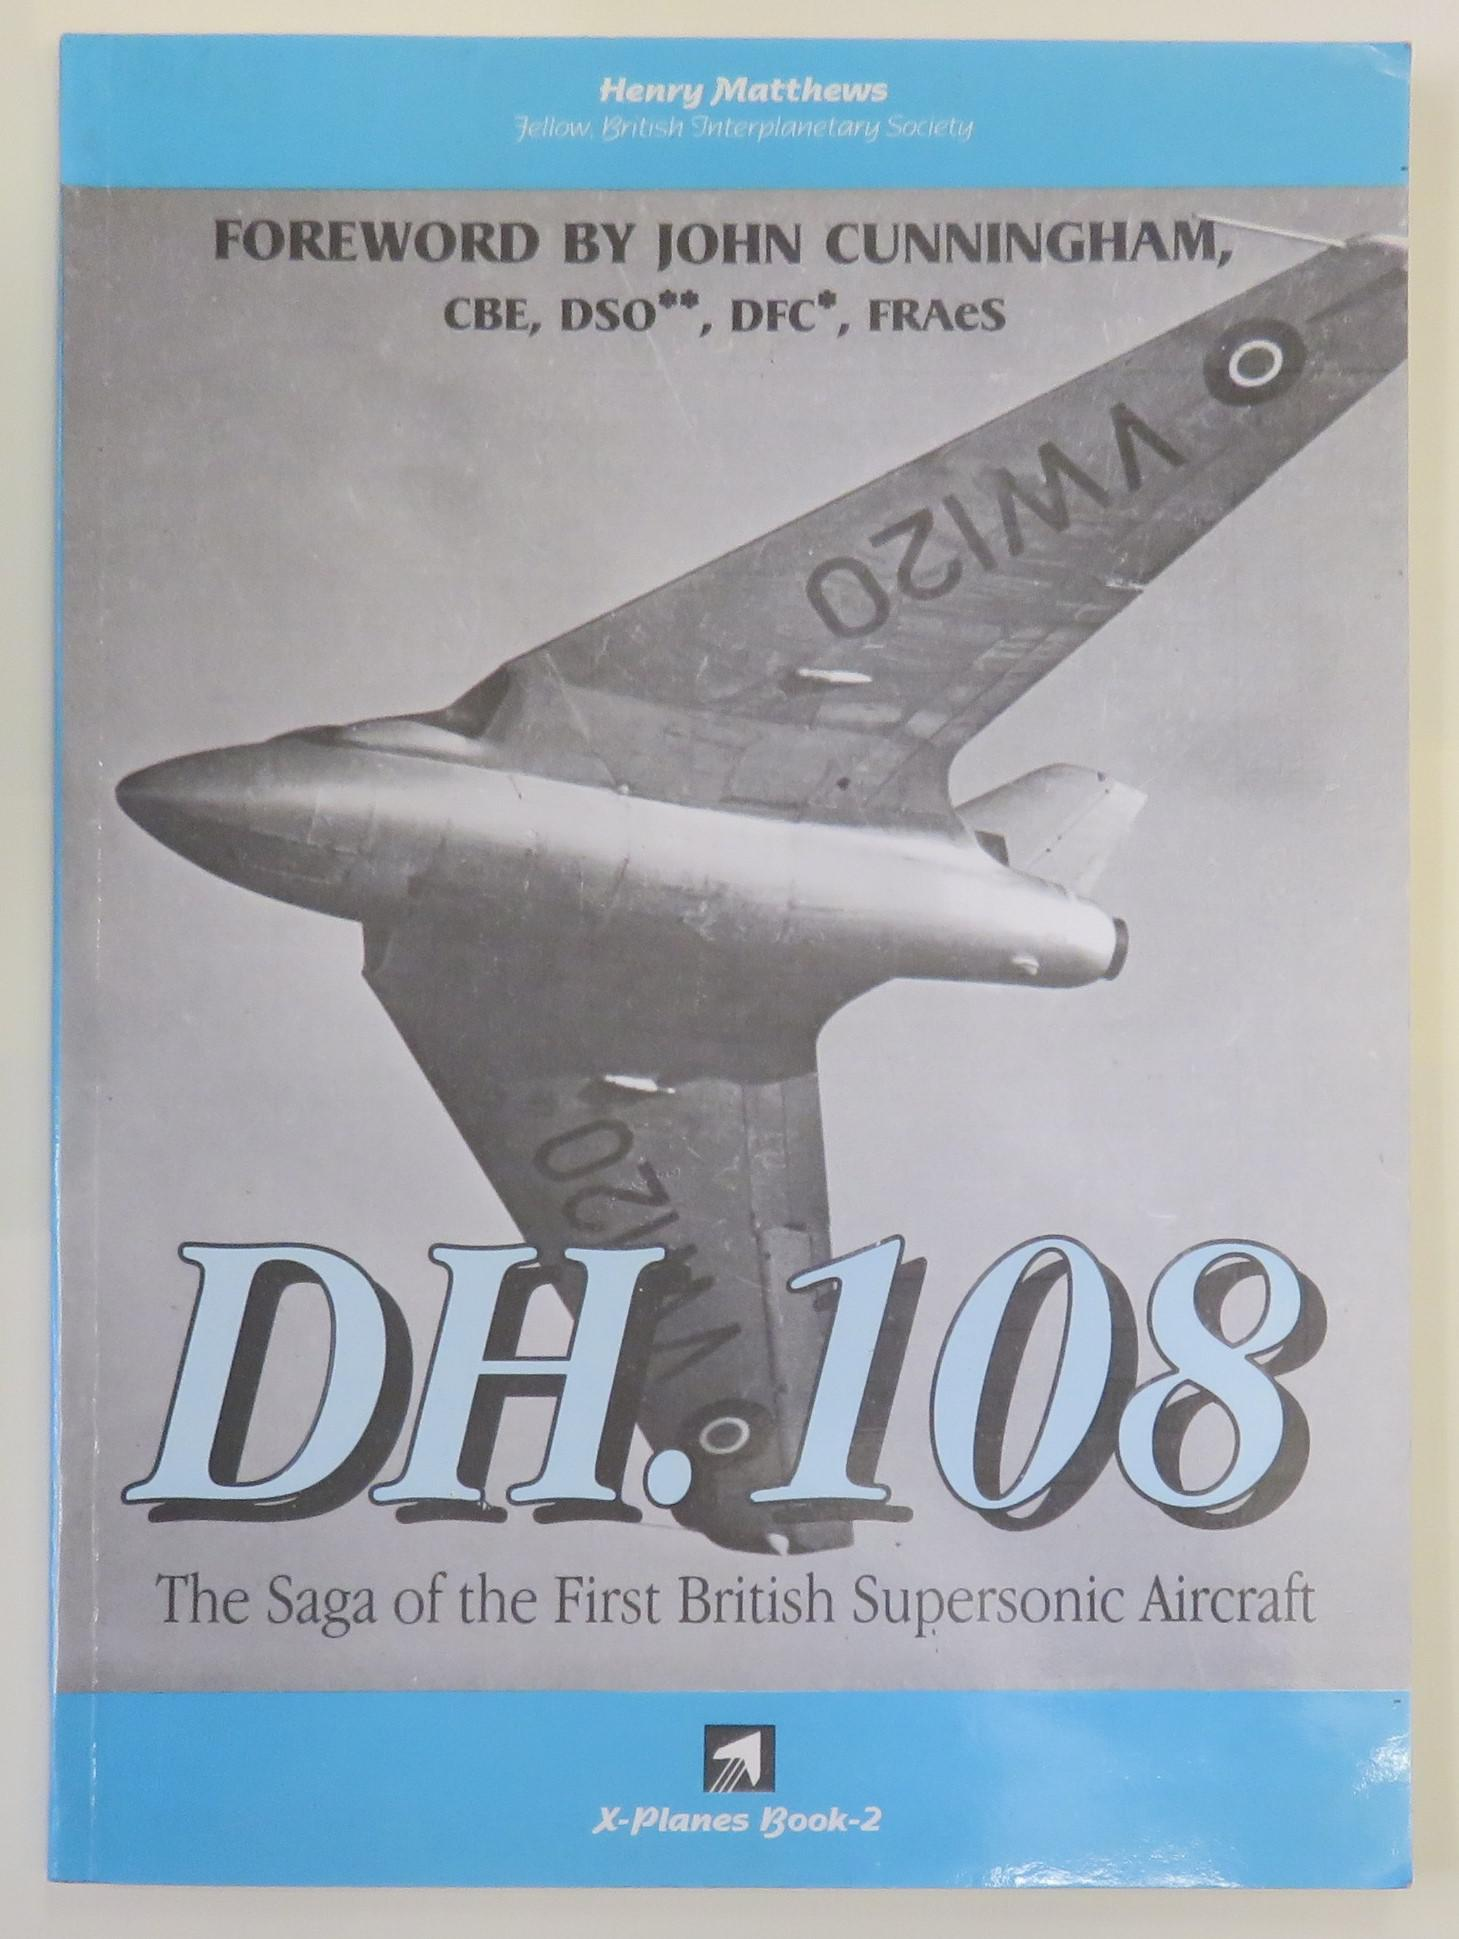 D.H. 108: The Saga of the First British Supersonic Aircraft